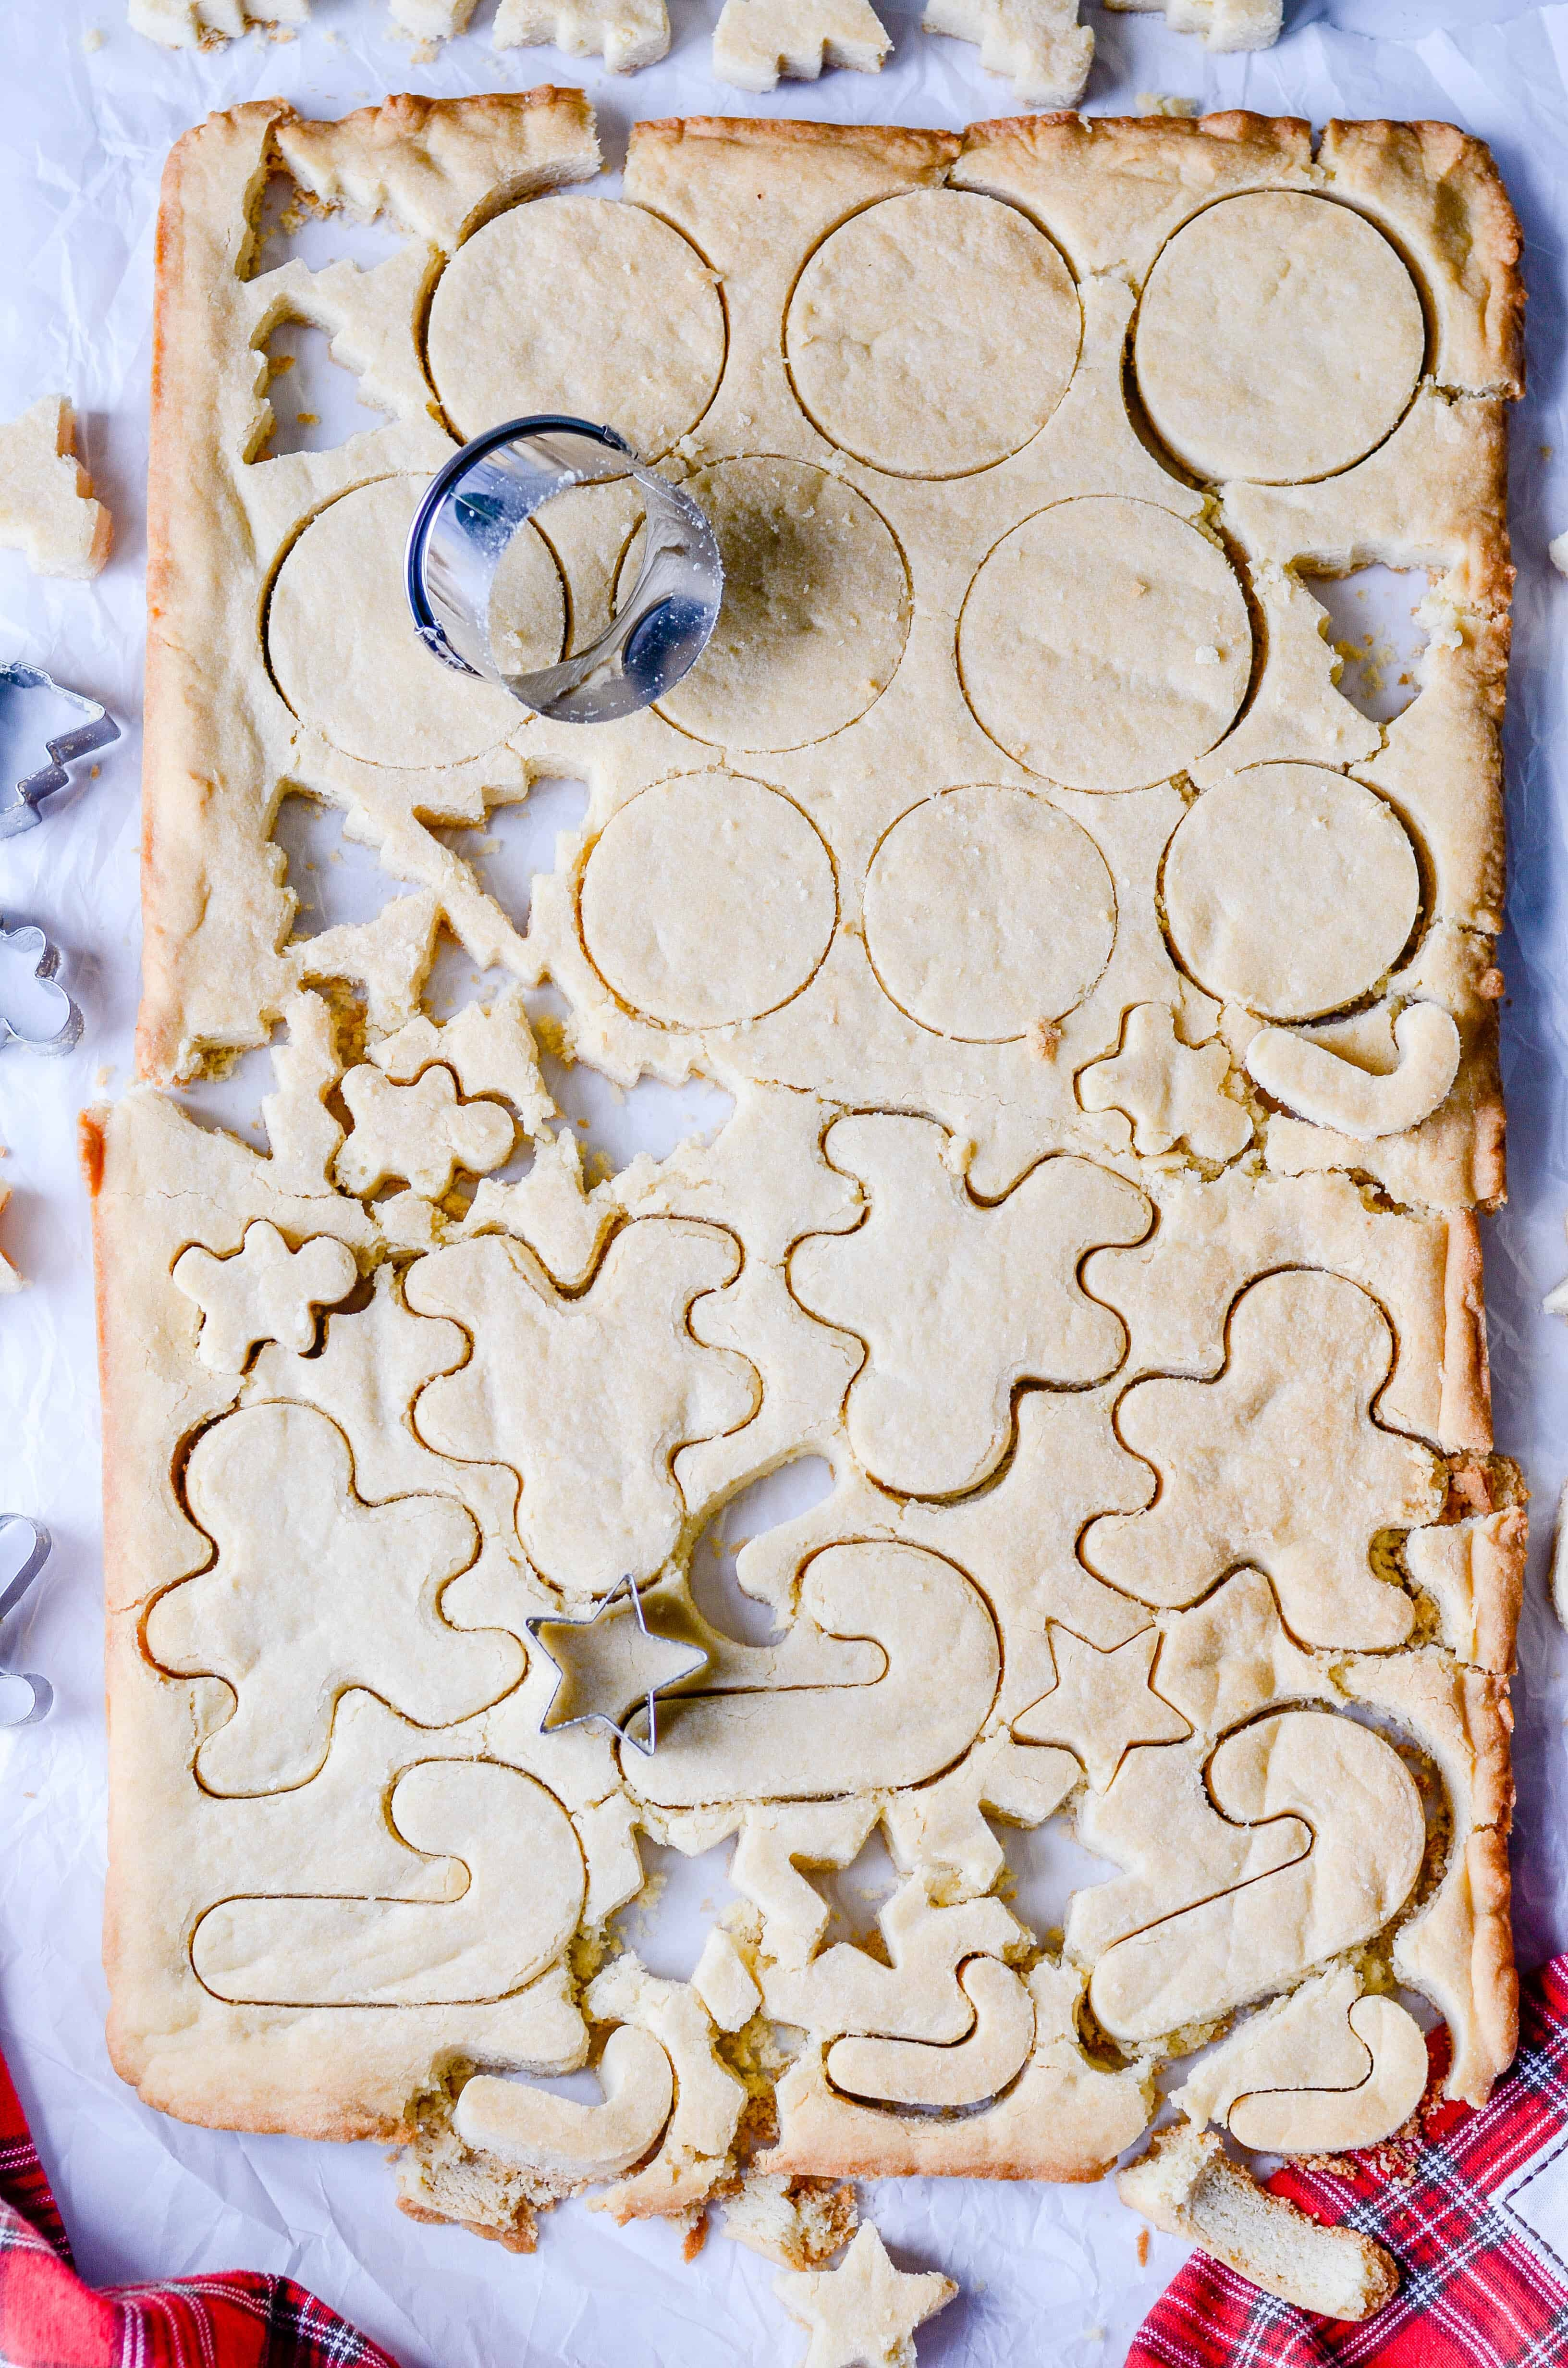 If you love sugar cookies but hate the process and the mess, you have to try this easy, fool-proof recipe for Shortcut Sugar Cookies!